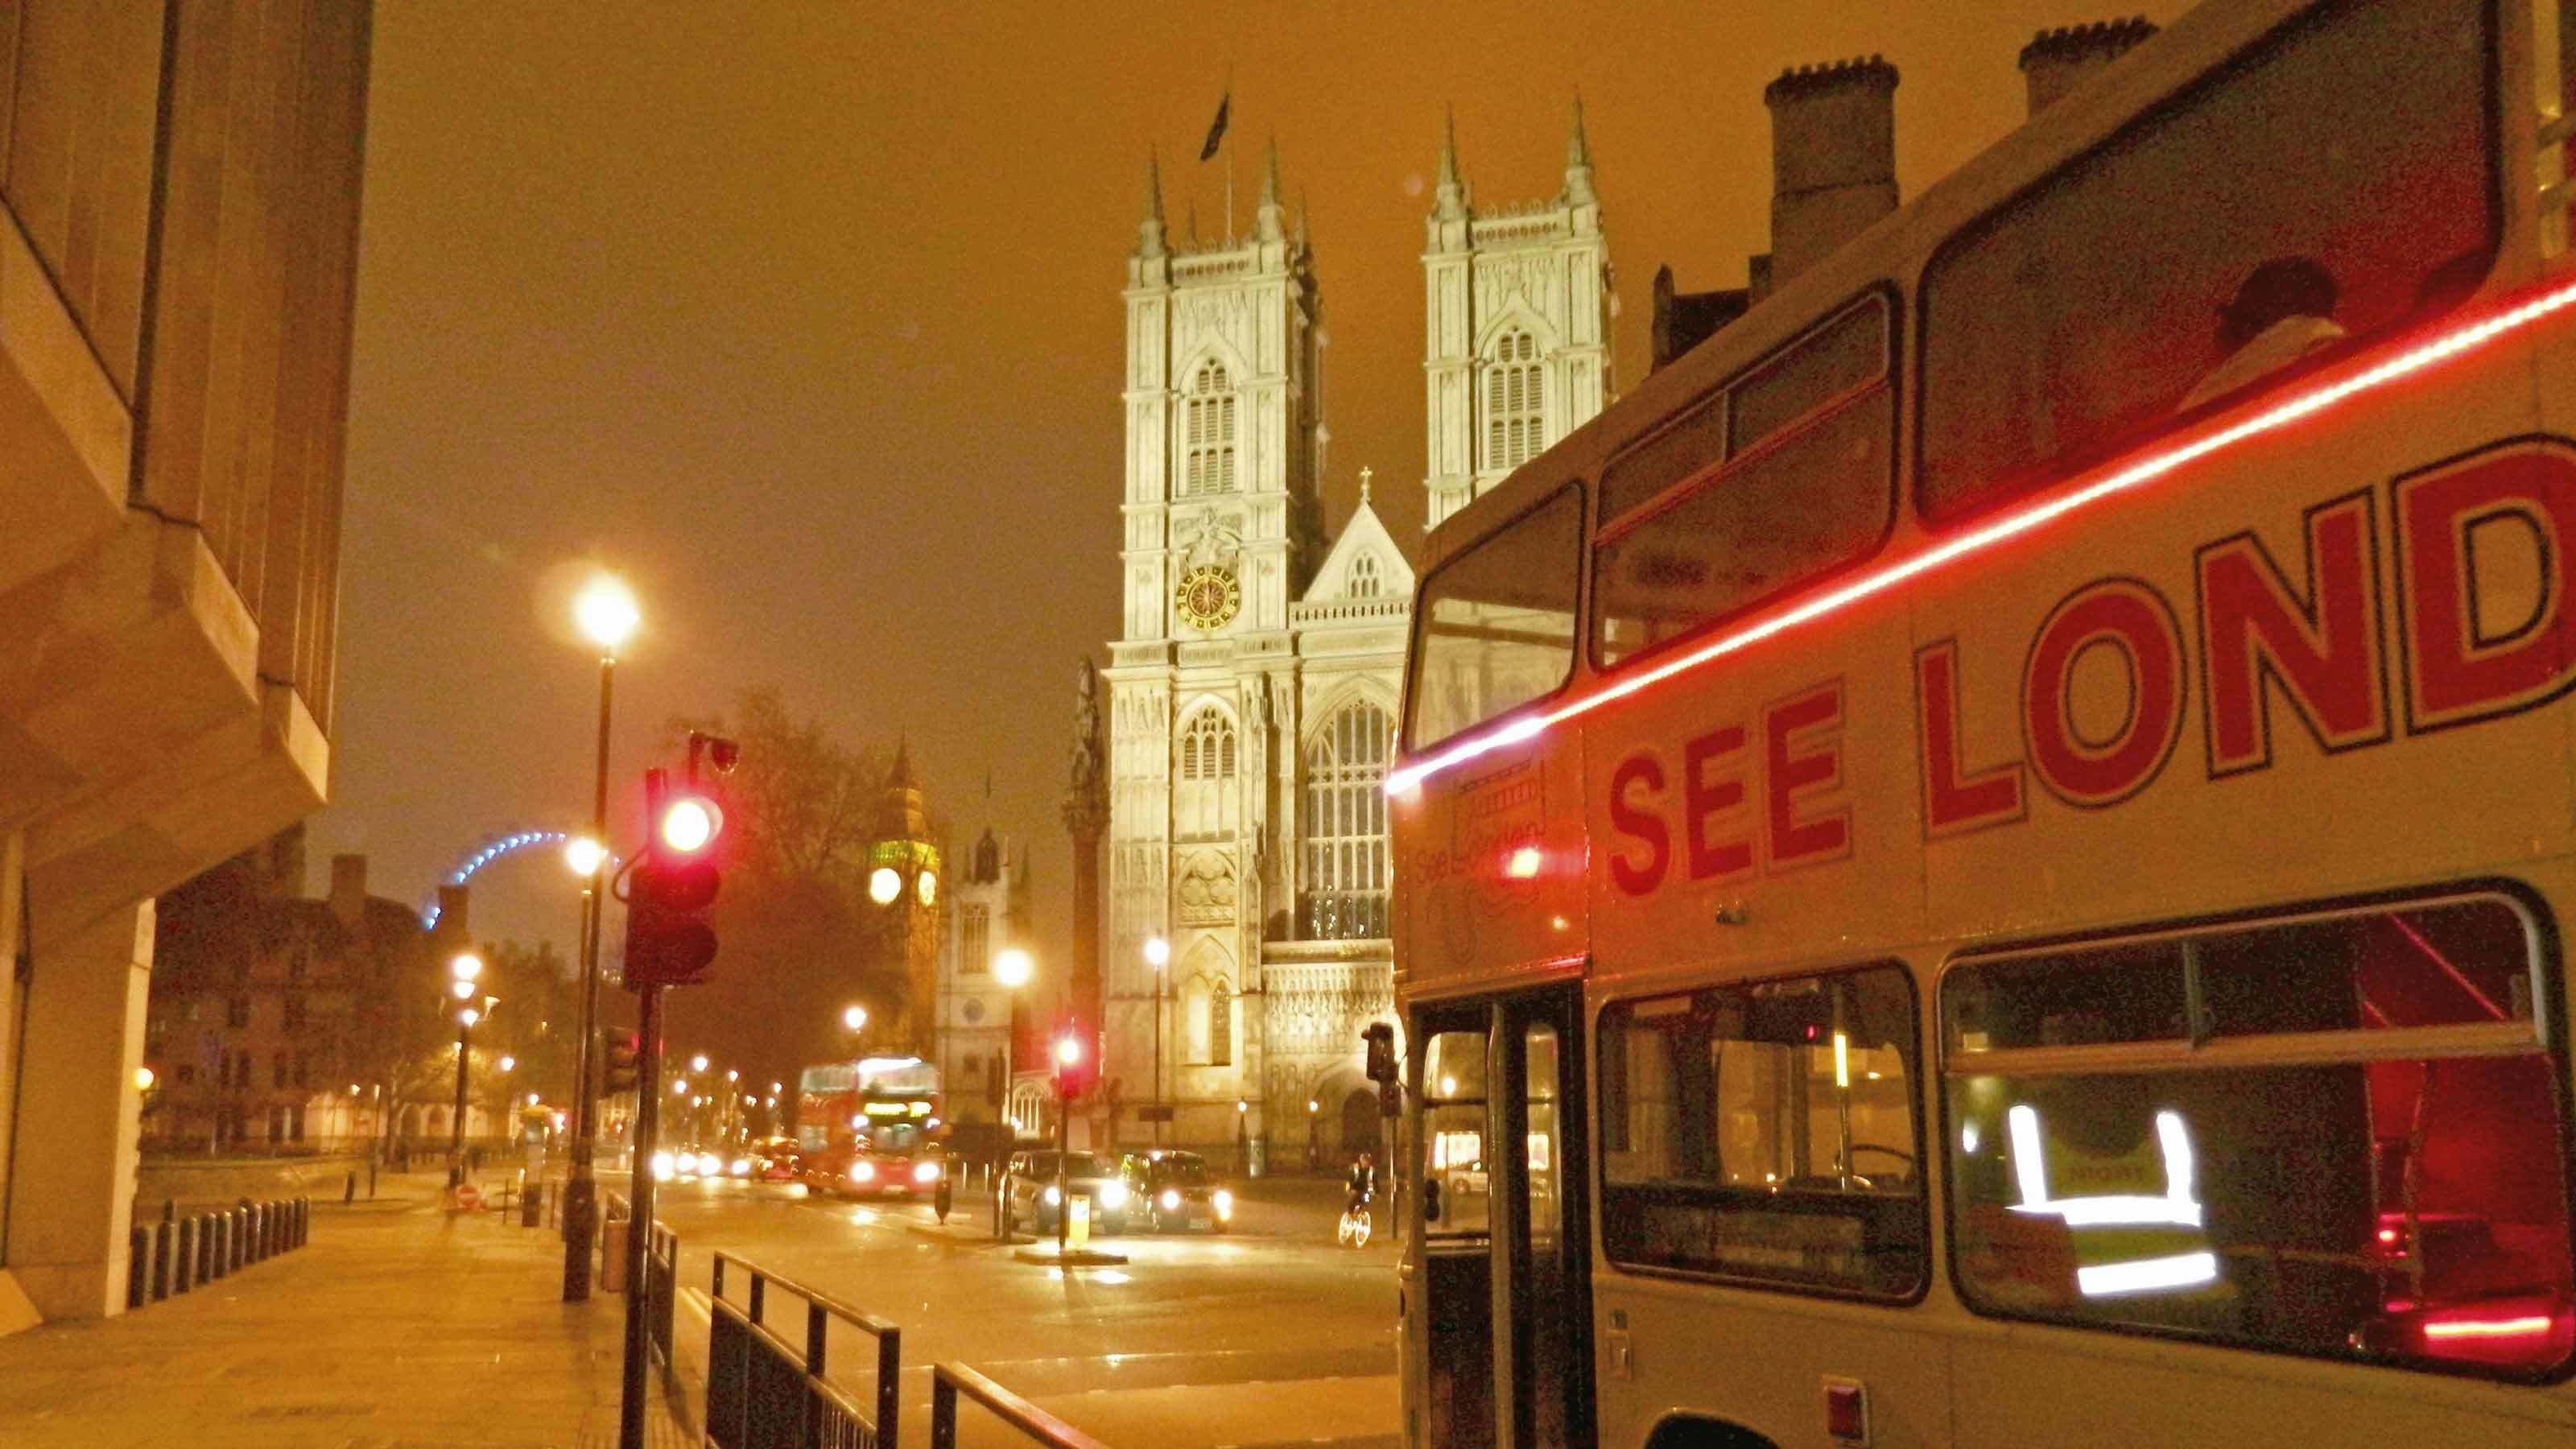 Tour bus at red light in London